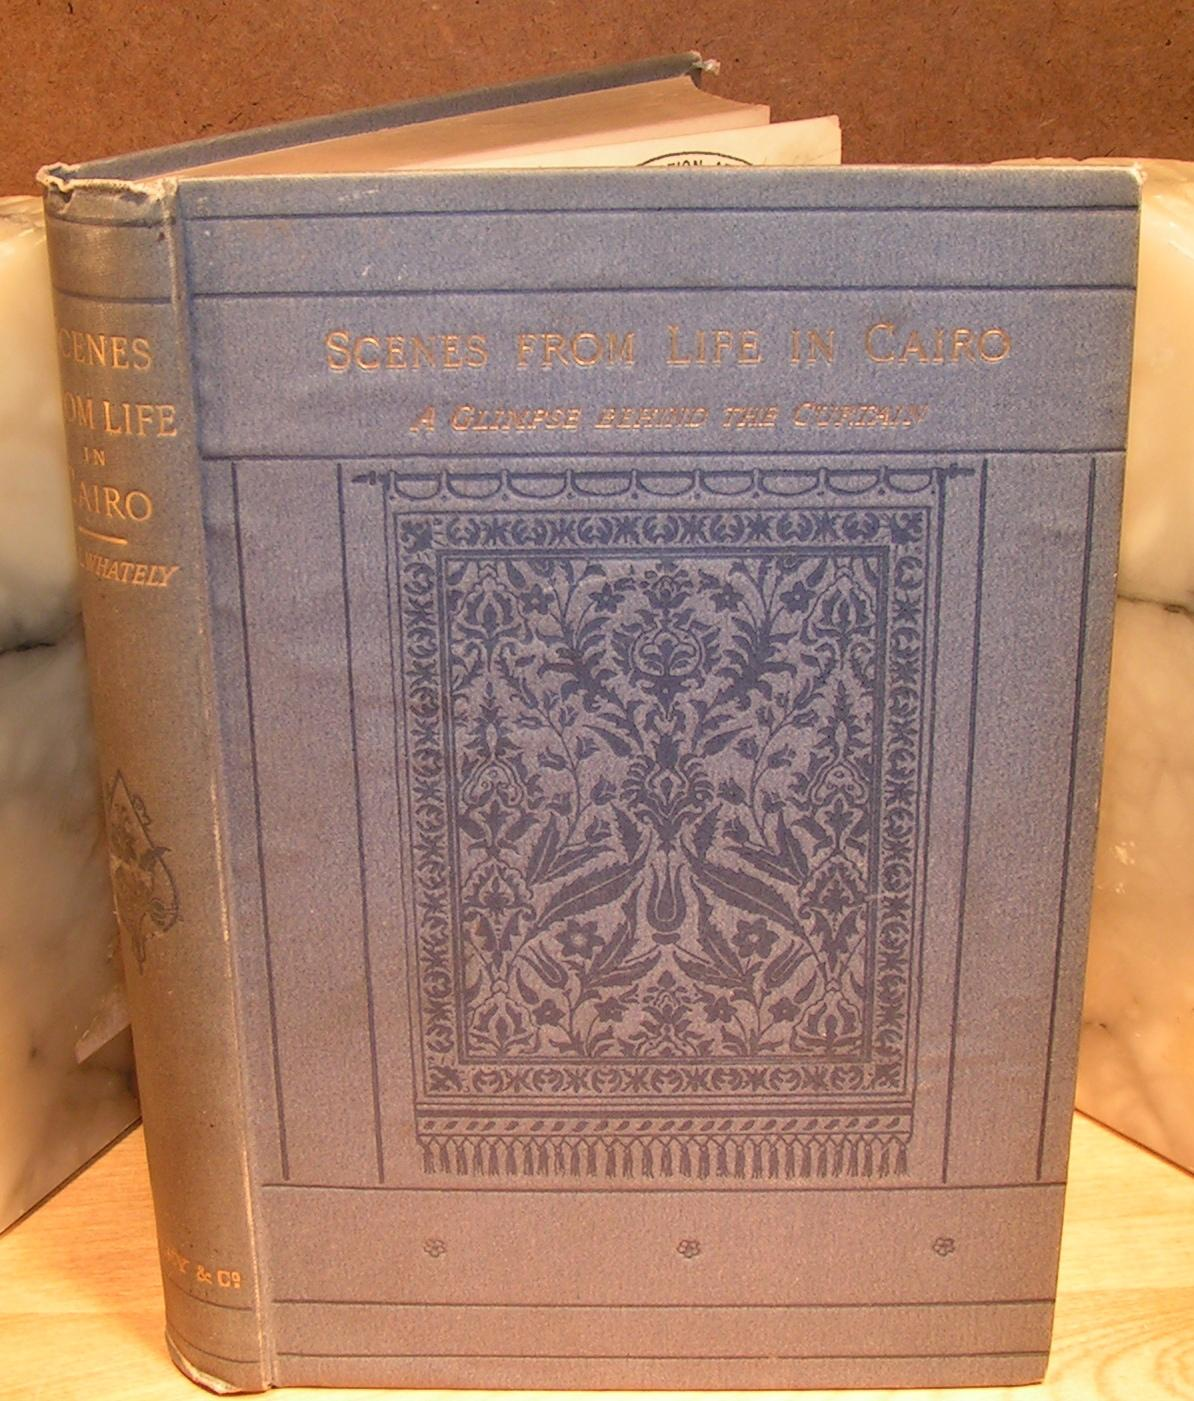 SCENES FROM LIFE IN CAIRO a glimpse behind the curtain (1883) WHATELY, Mary L.